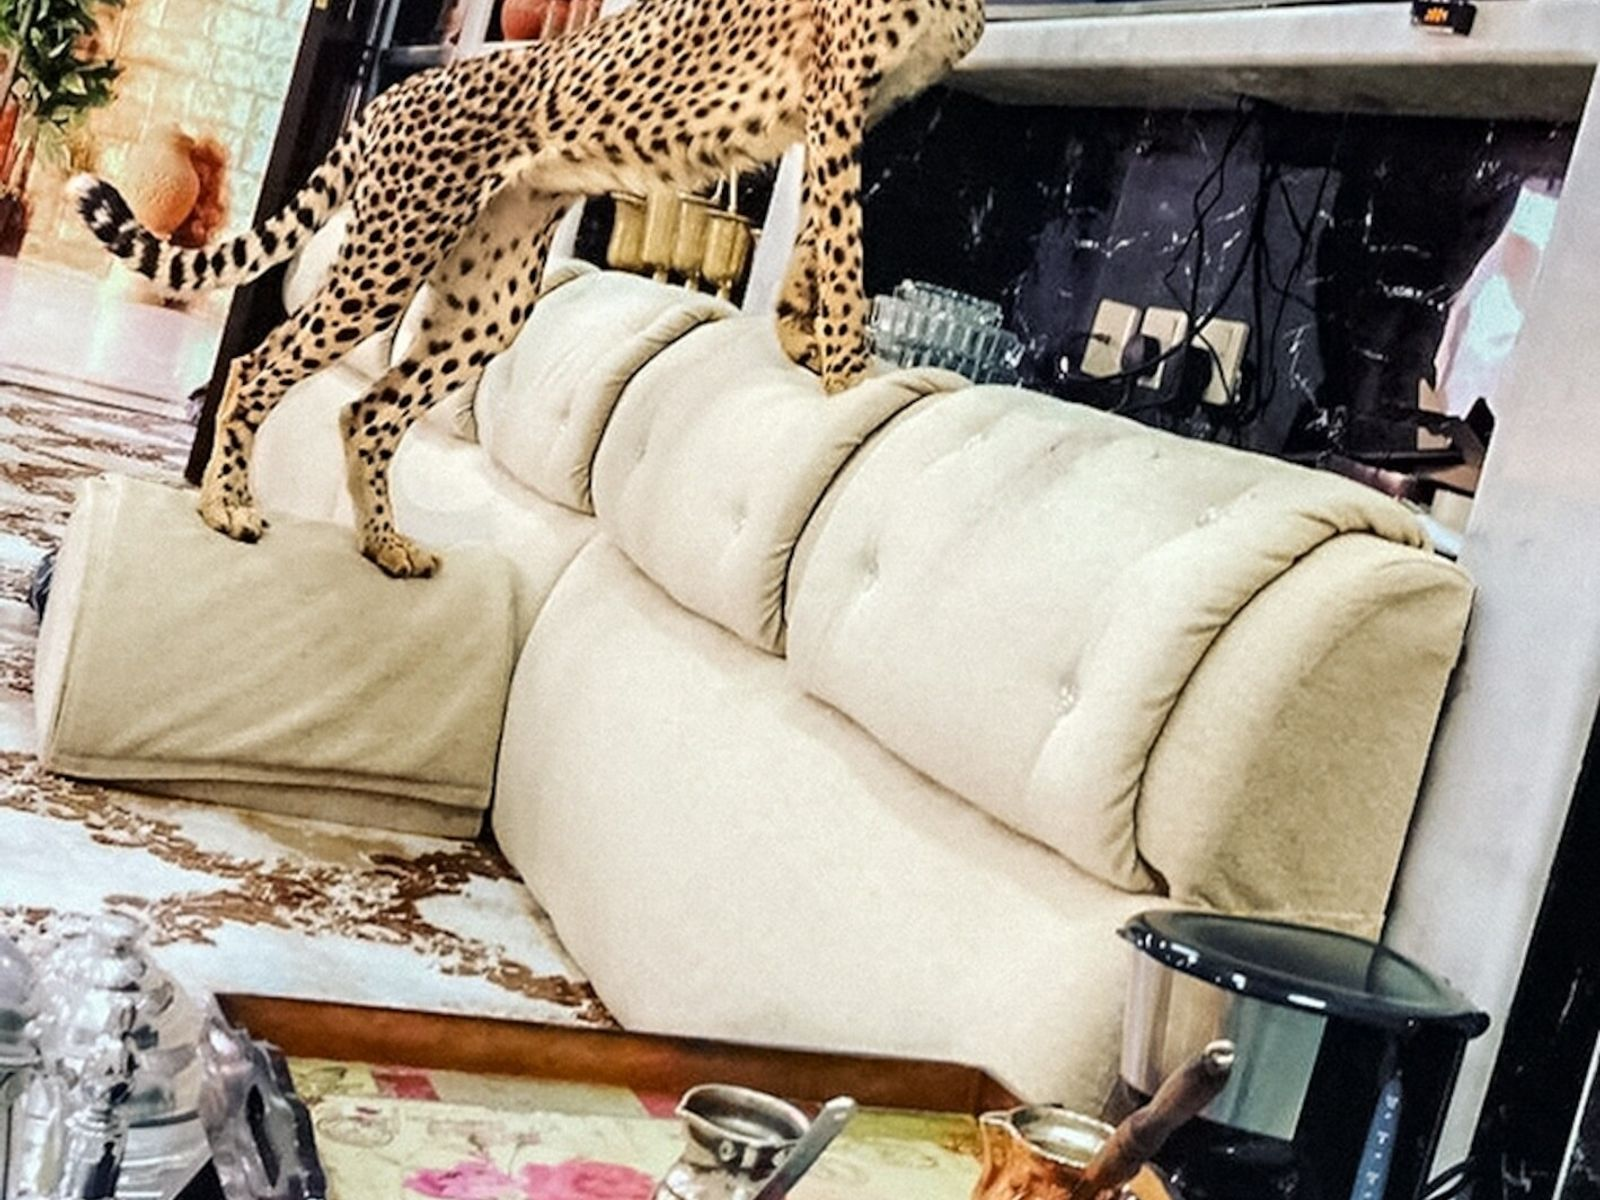 """For those who buy pet cheetahs, """"the novelty wears off quickly, aside from the picture you ..."""